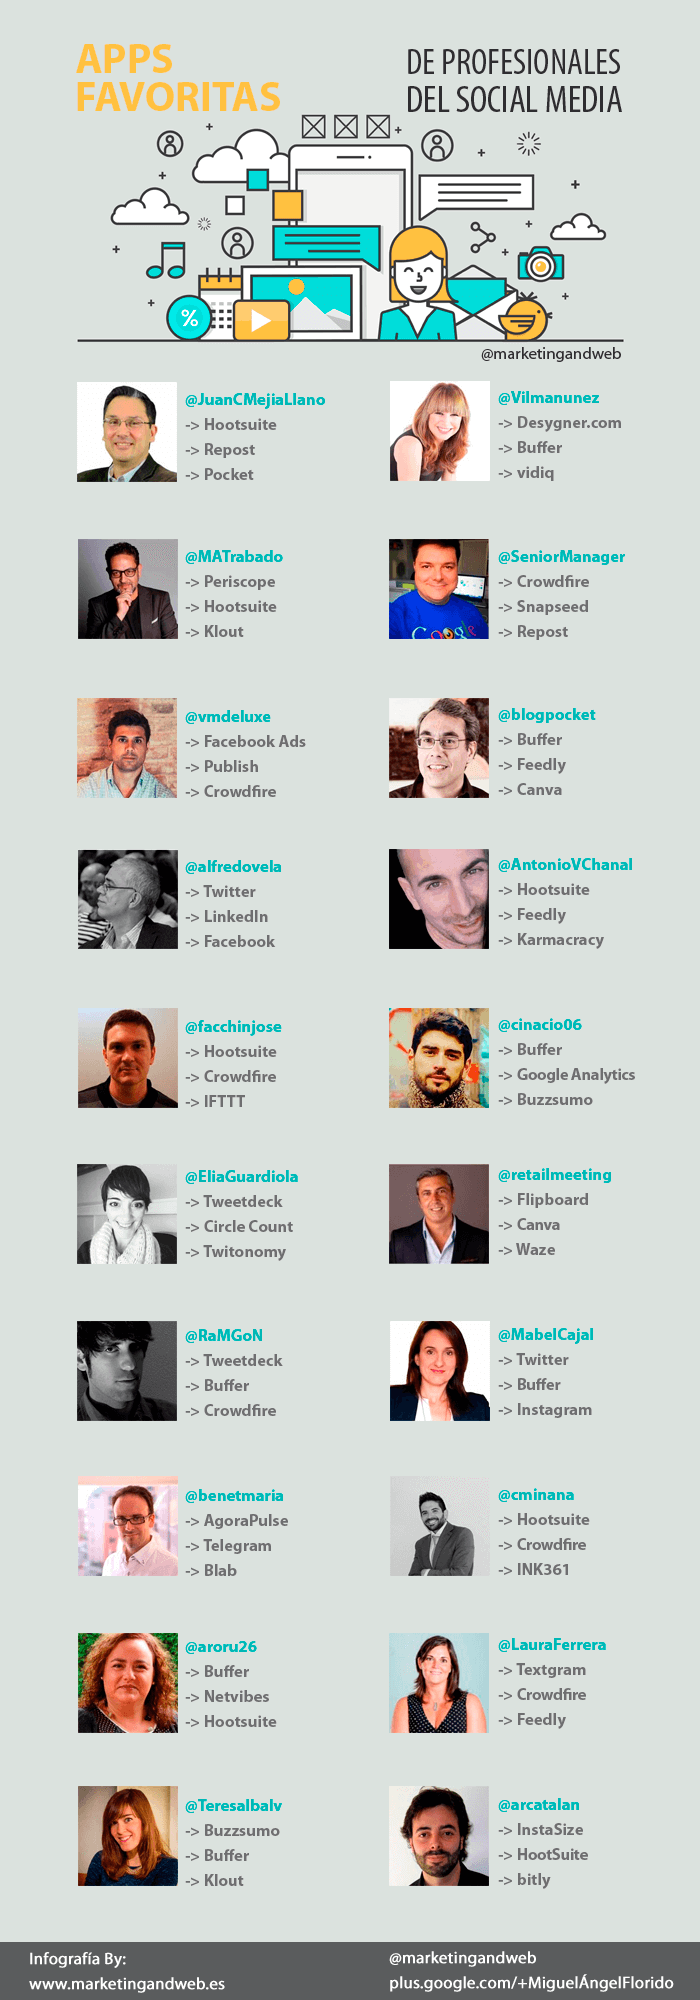 APPs favoritas de 20 profesionales del Social Media